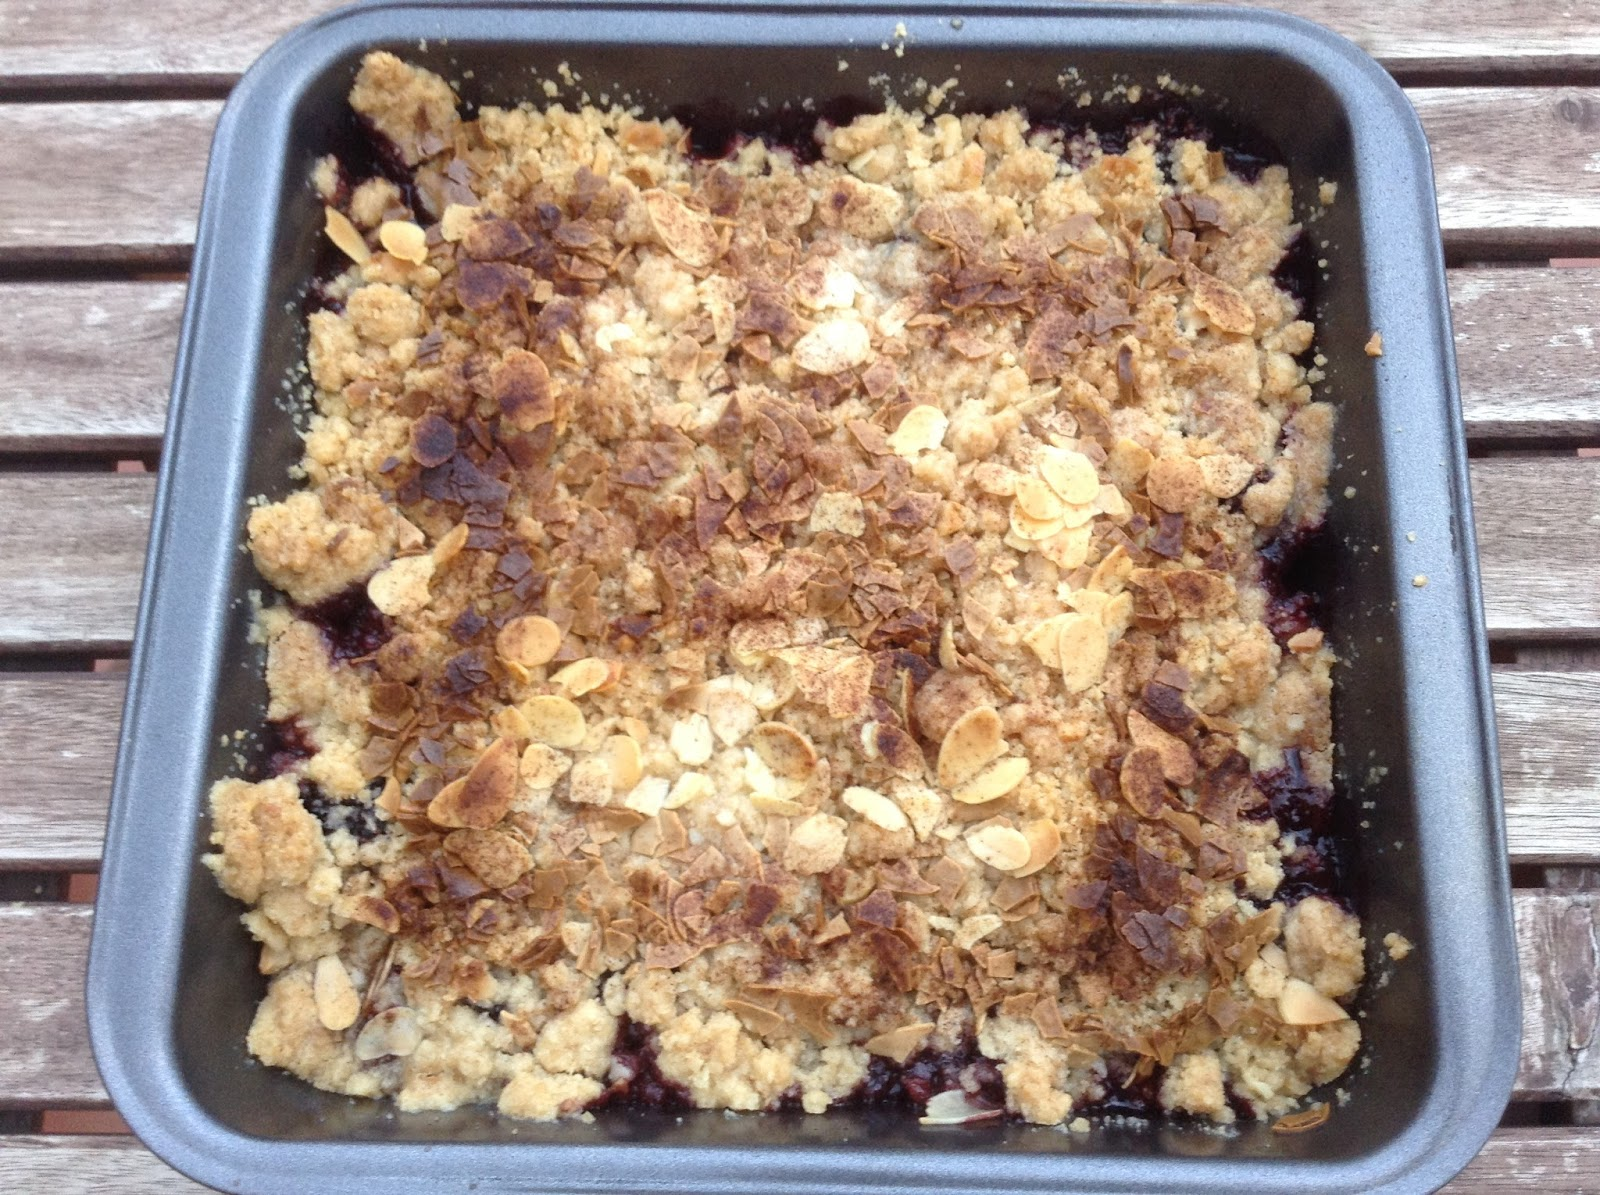 Crumble de moras y chocolate blanco